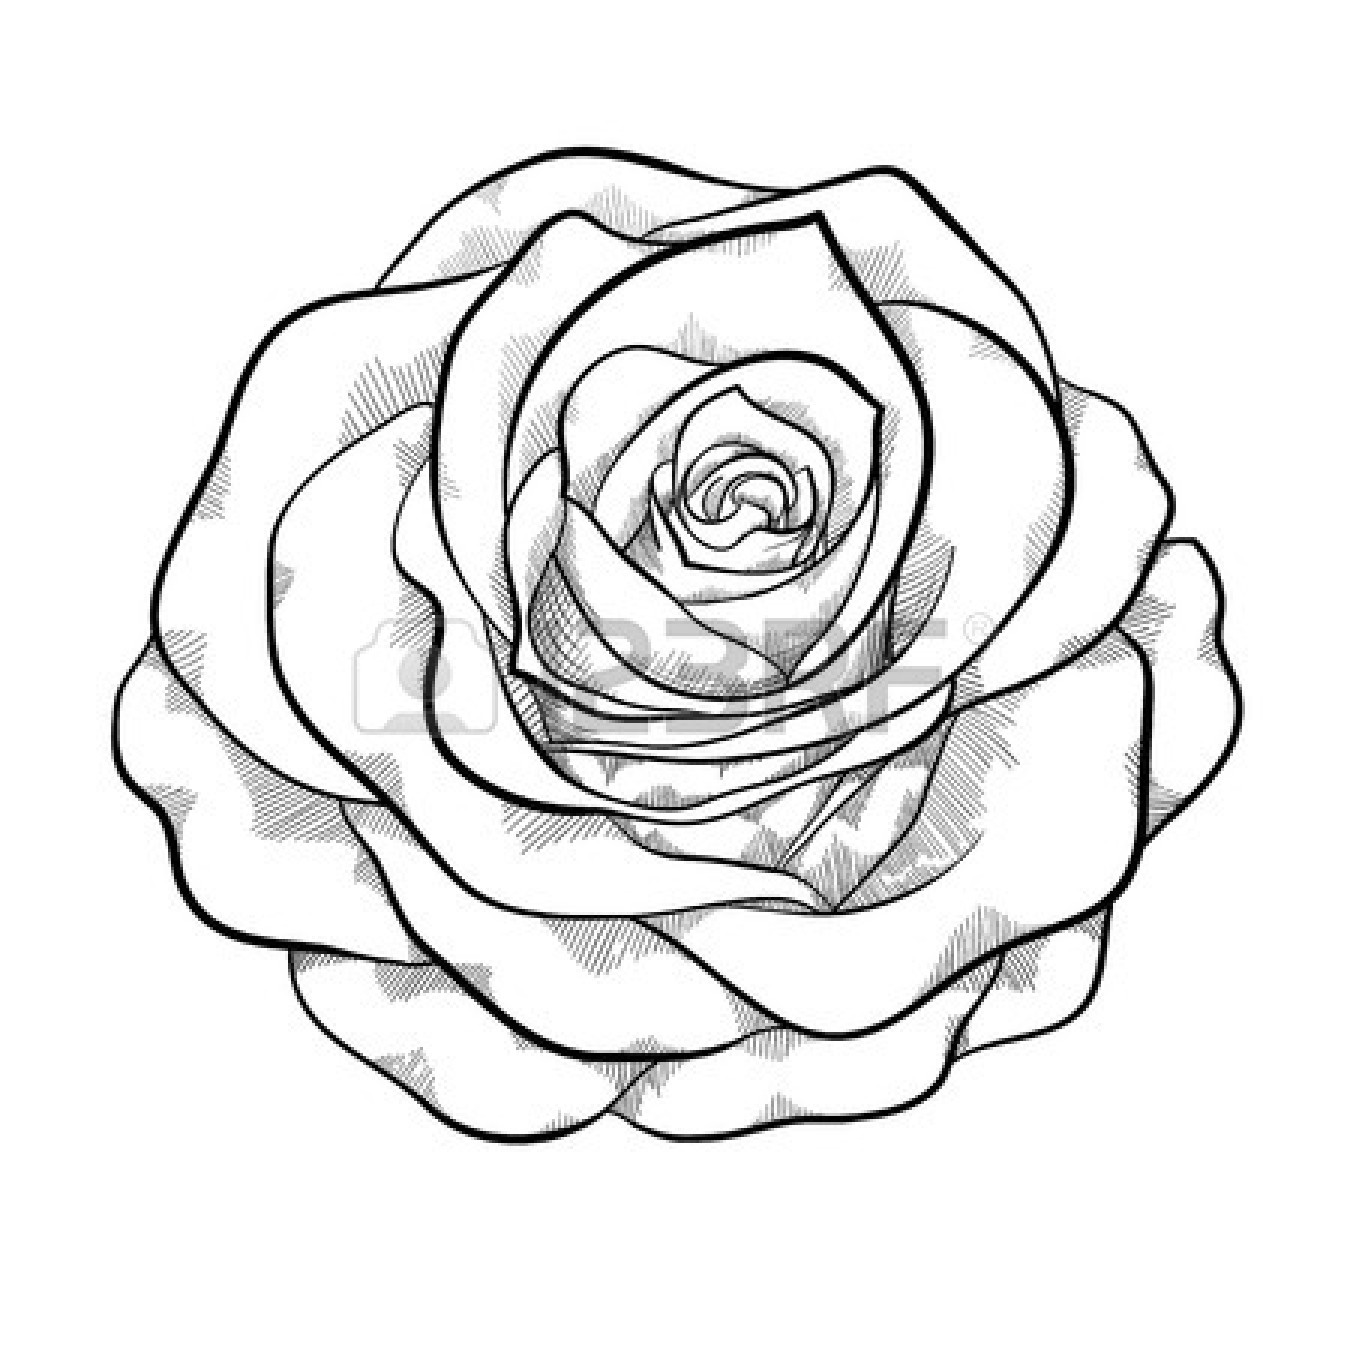 1350x1350 Drawn Rose Black And White